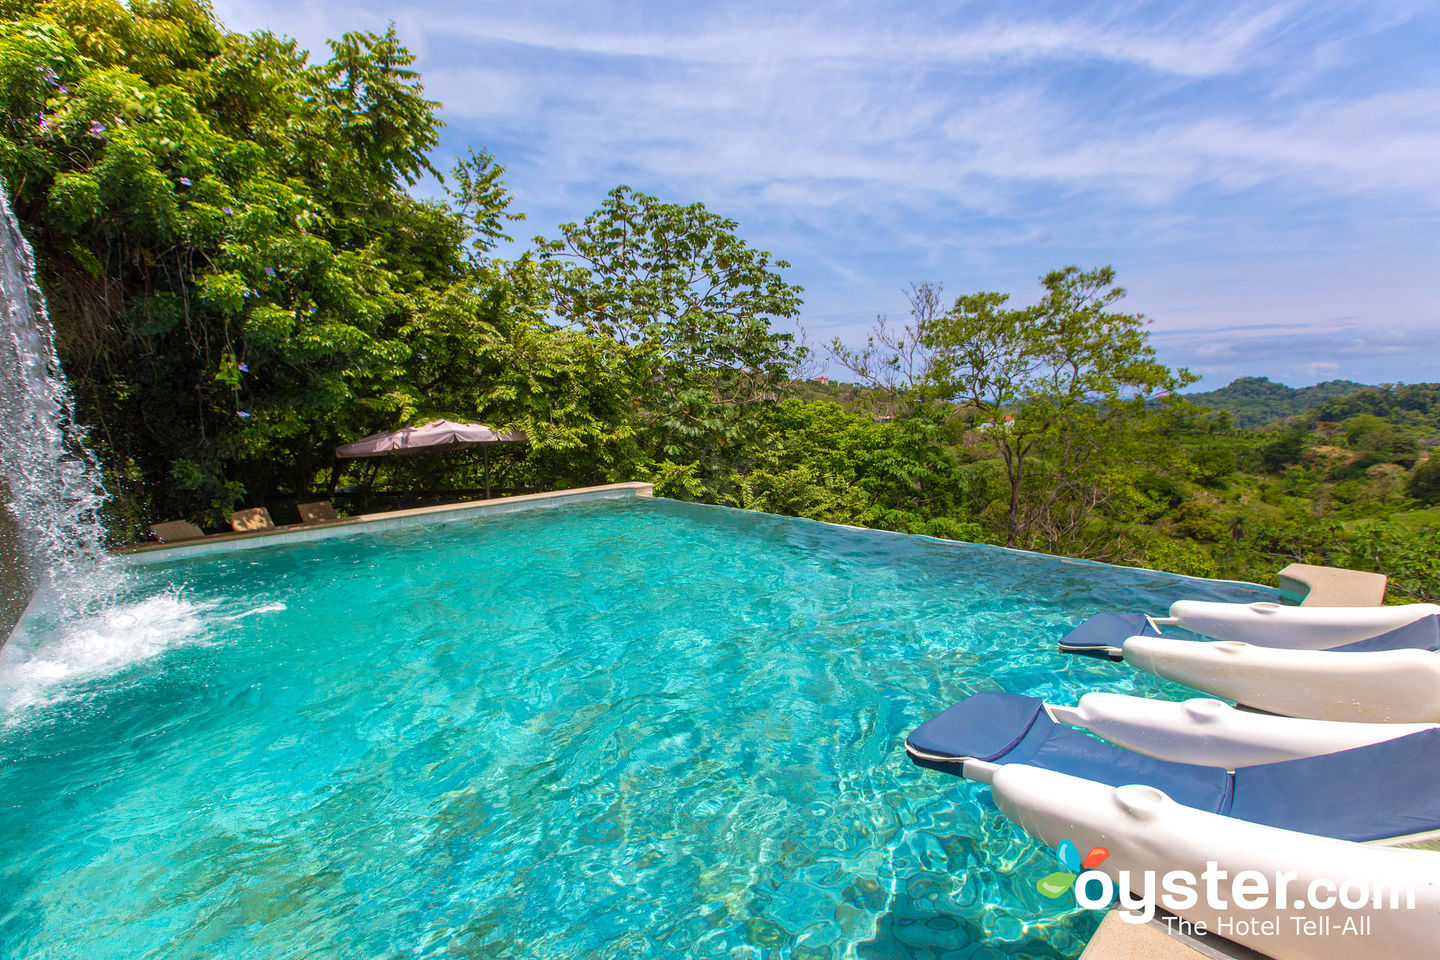 The Most Beautiful Resorts in Costa Rica | Oyster.com